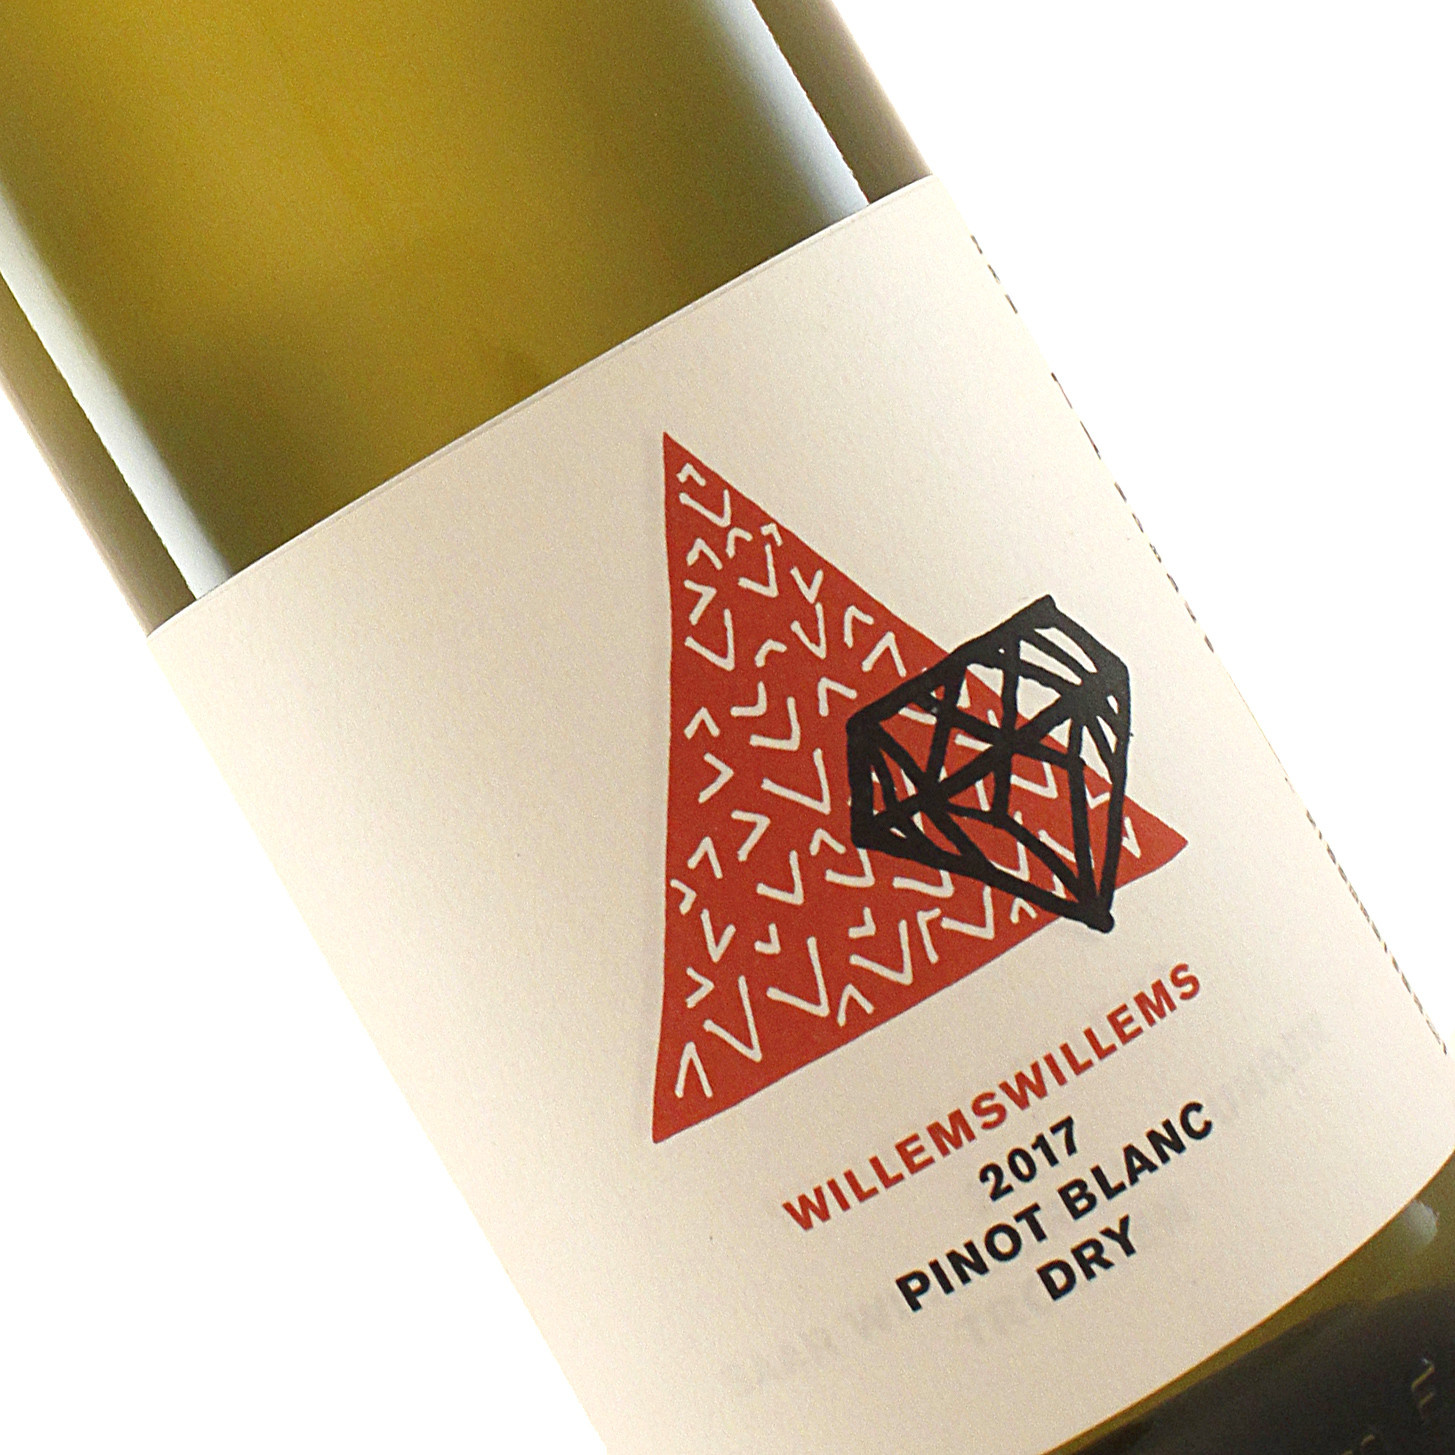 Willems-Willems 2017 Pinot Blanc Dry, Mosel Germany